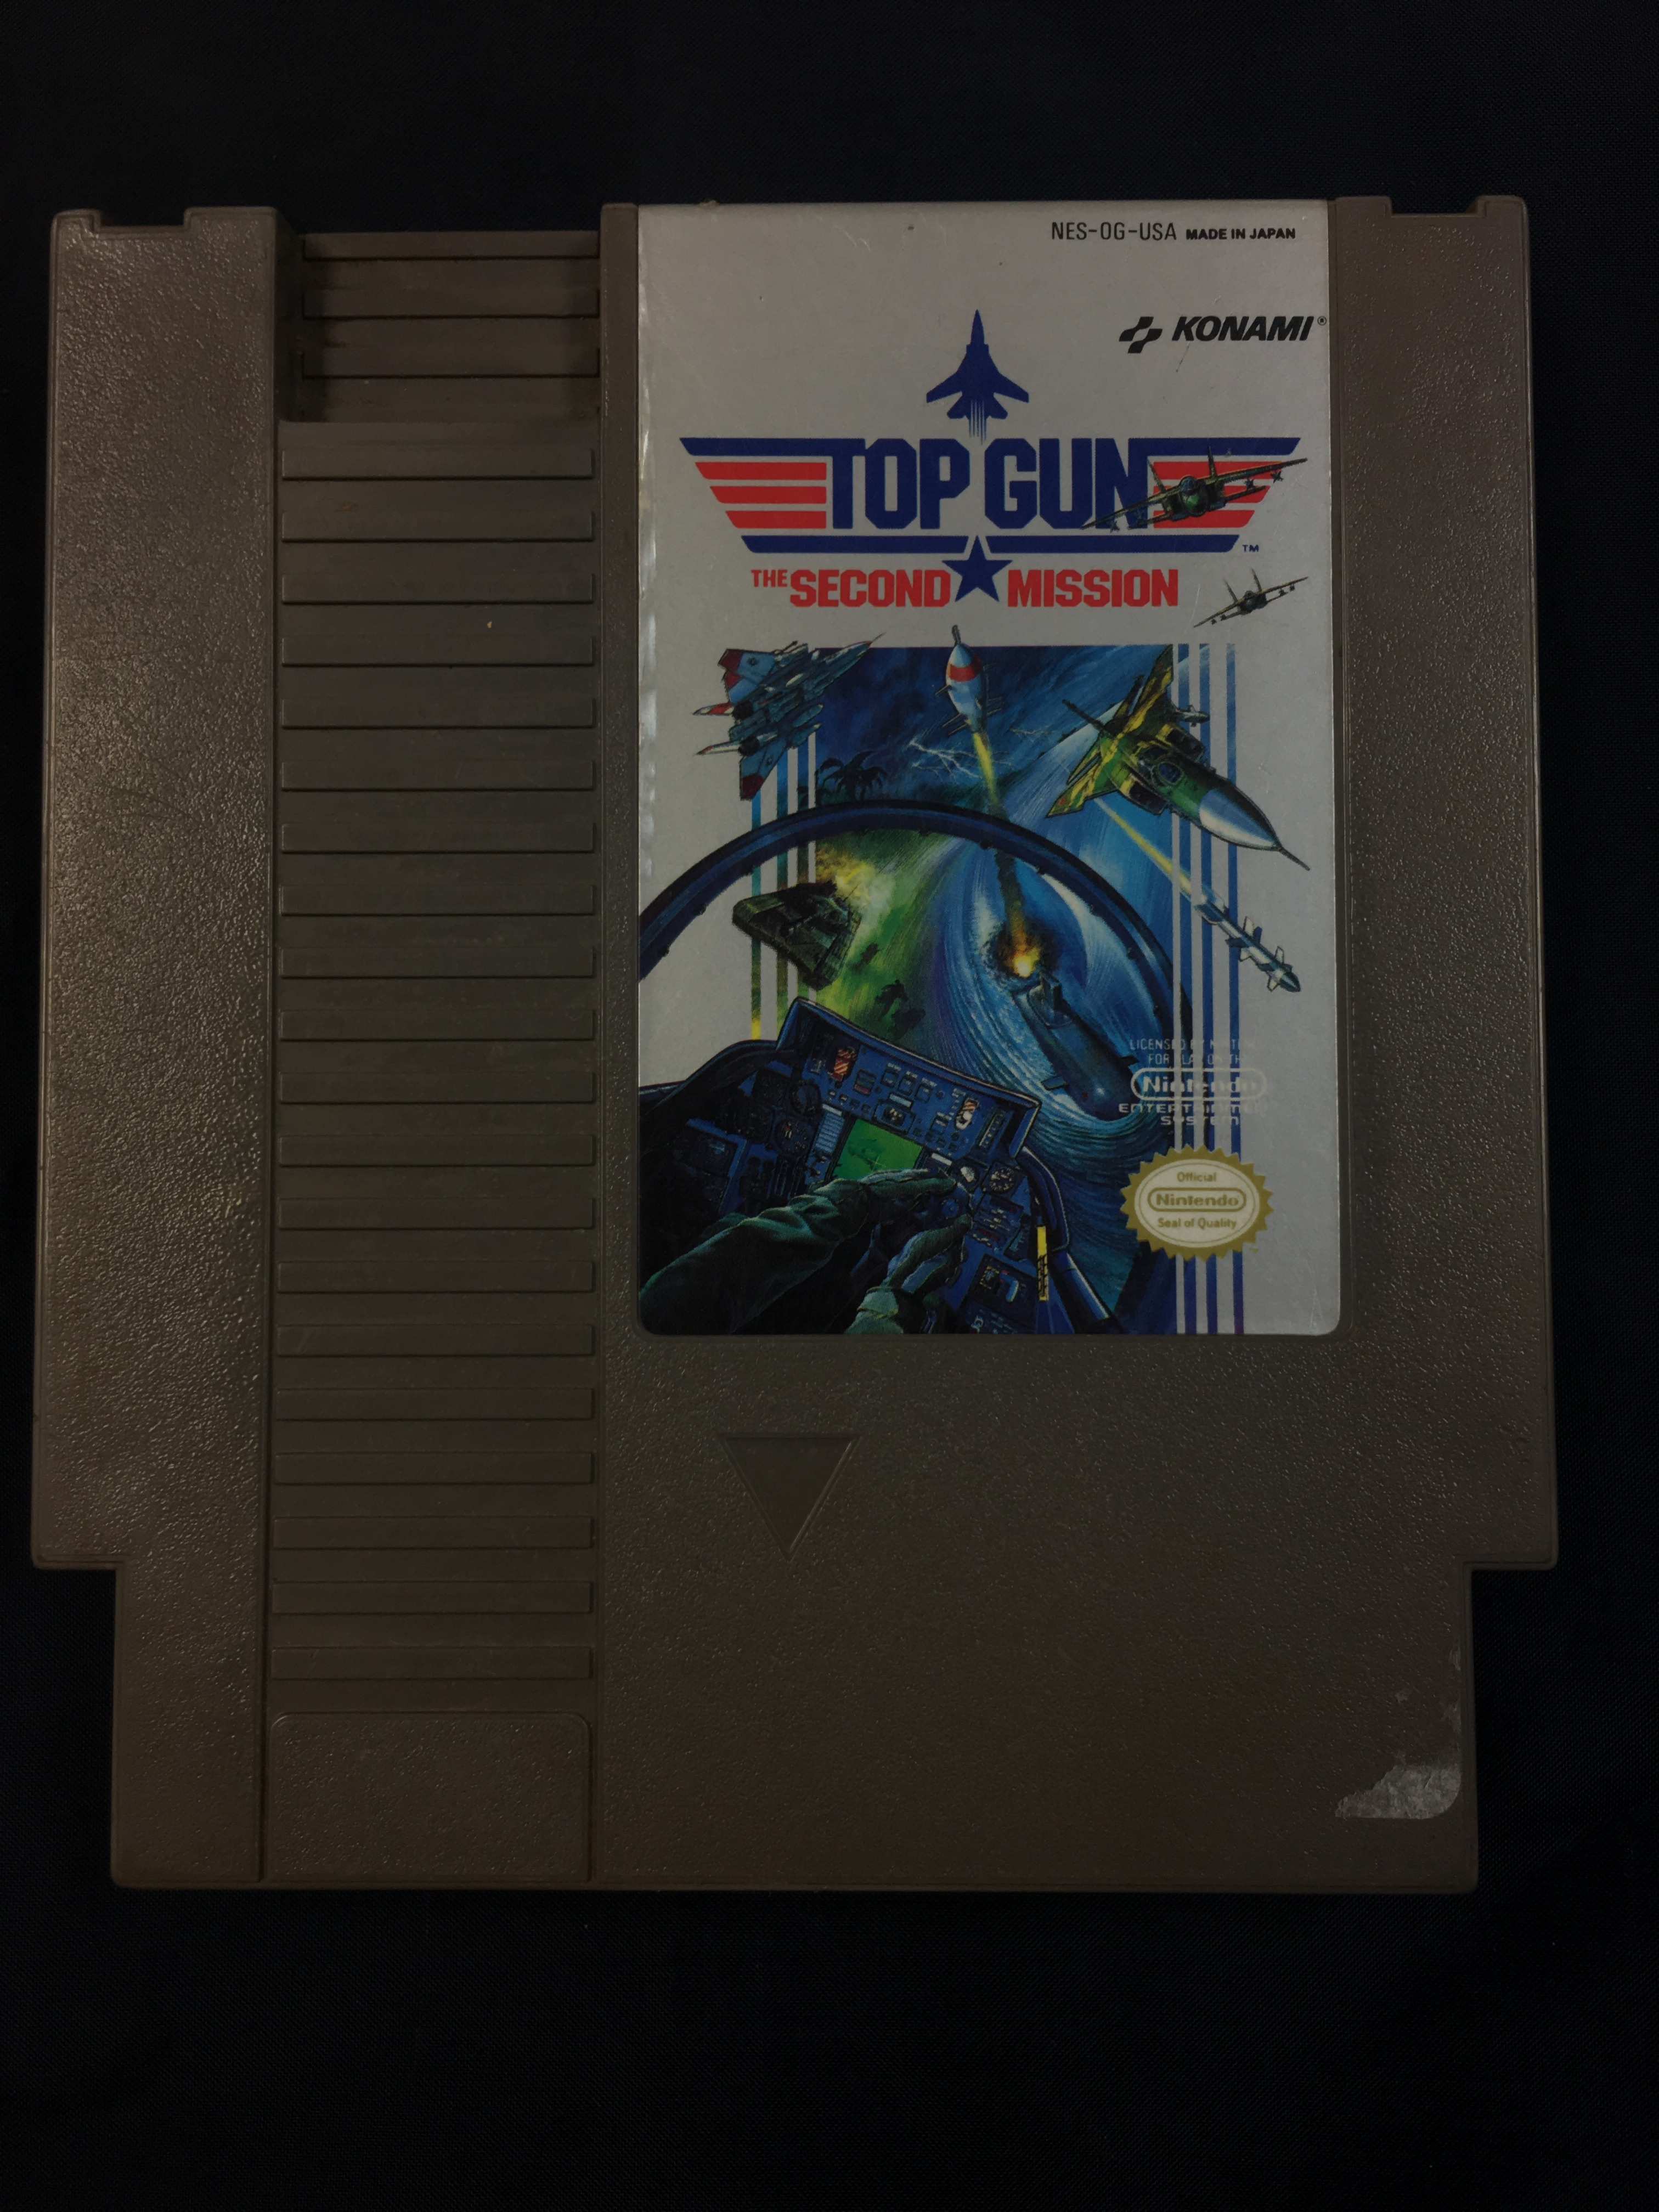 NINTENDO GAME: TOP GUN THE SECOND MISSION